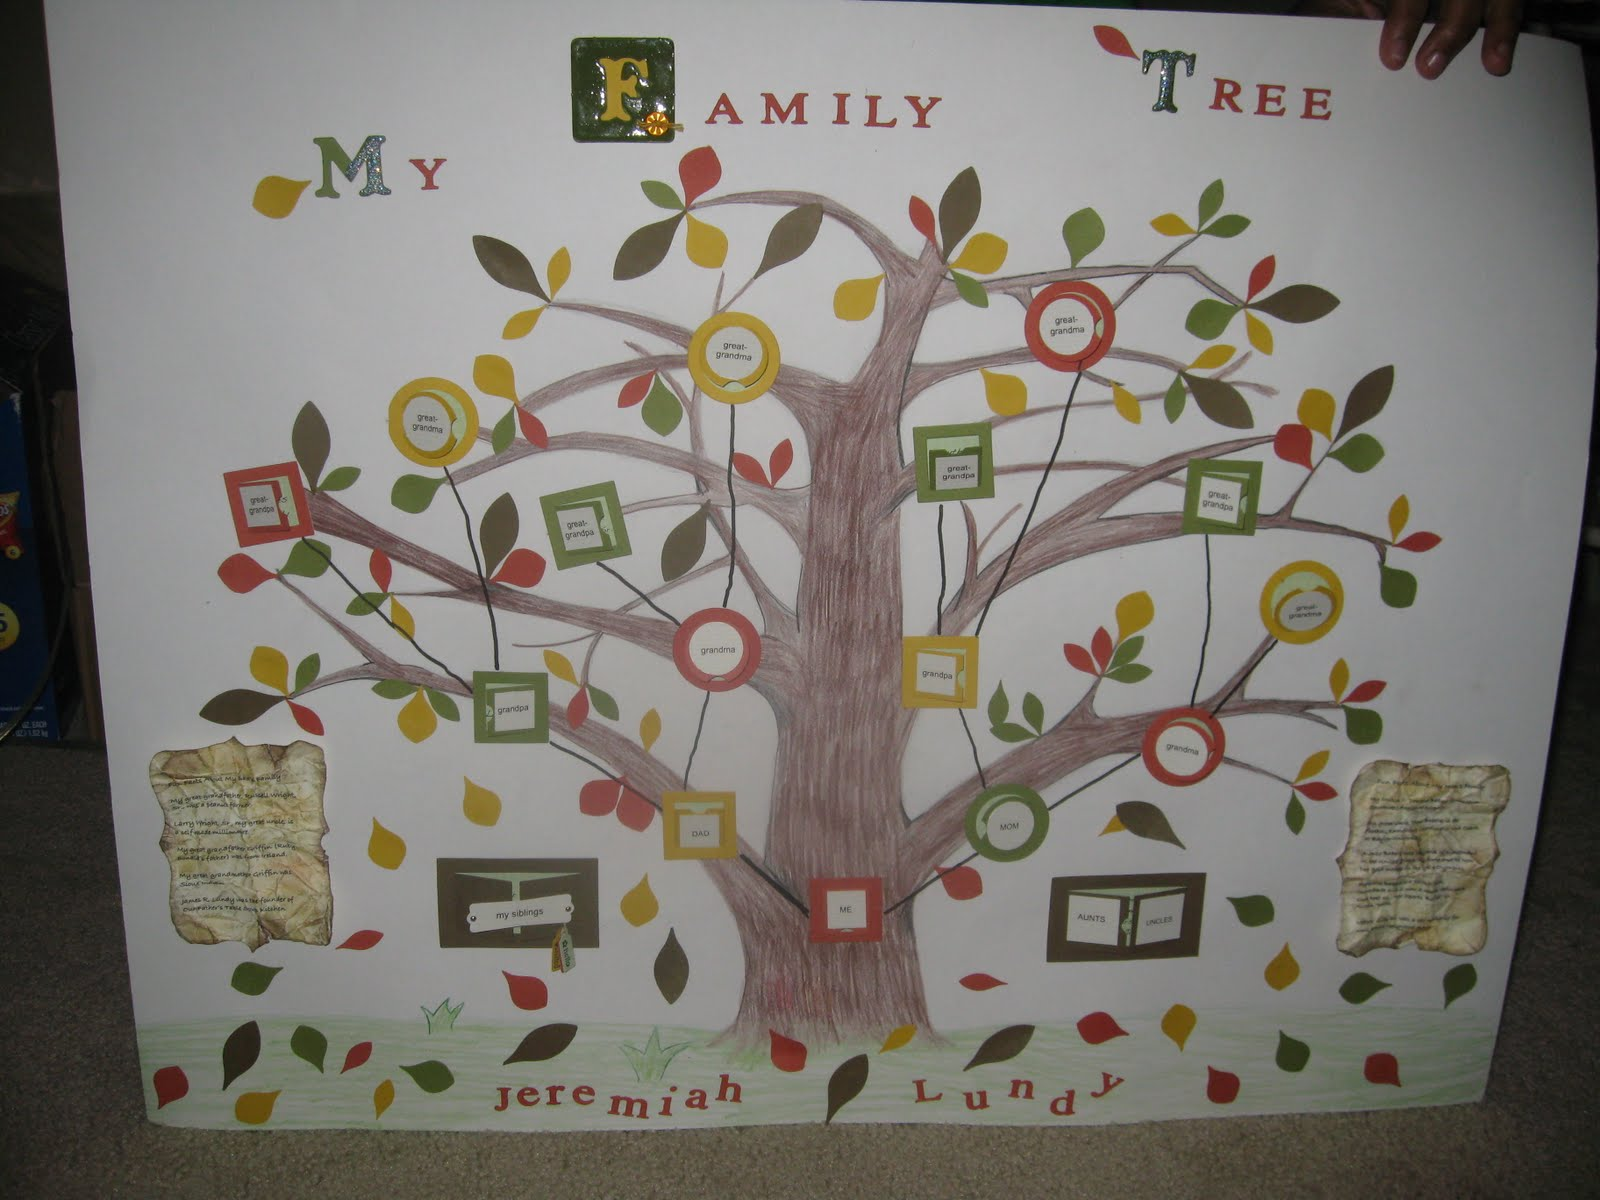 family tree assignment It's fun and educational to explore your ancestry if you study or investigate your family history, you're learning genealogy there are three assignments due on wednesday, april 7th (after spring break.